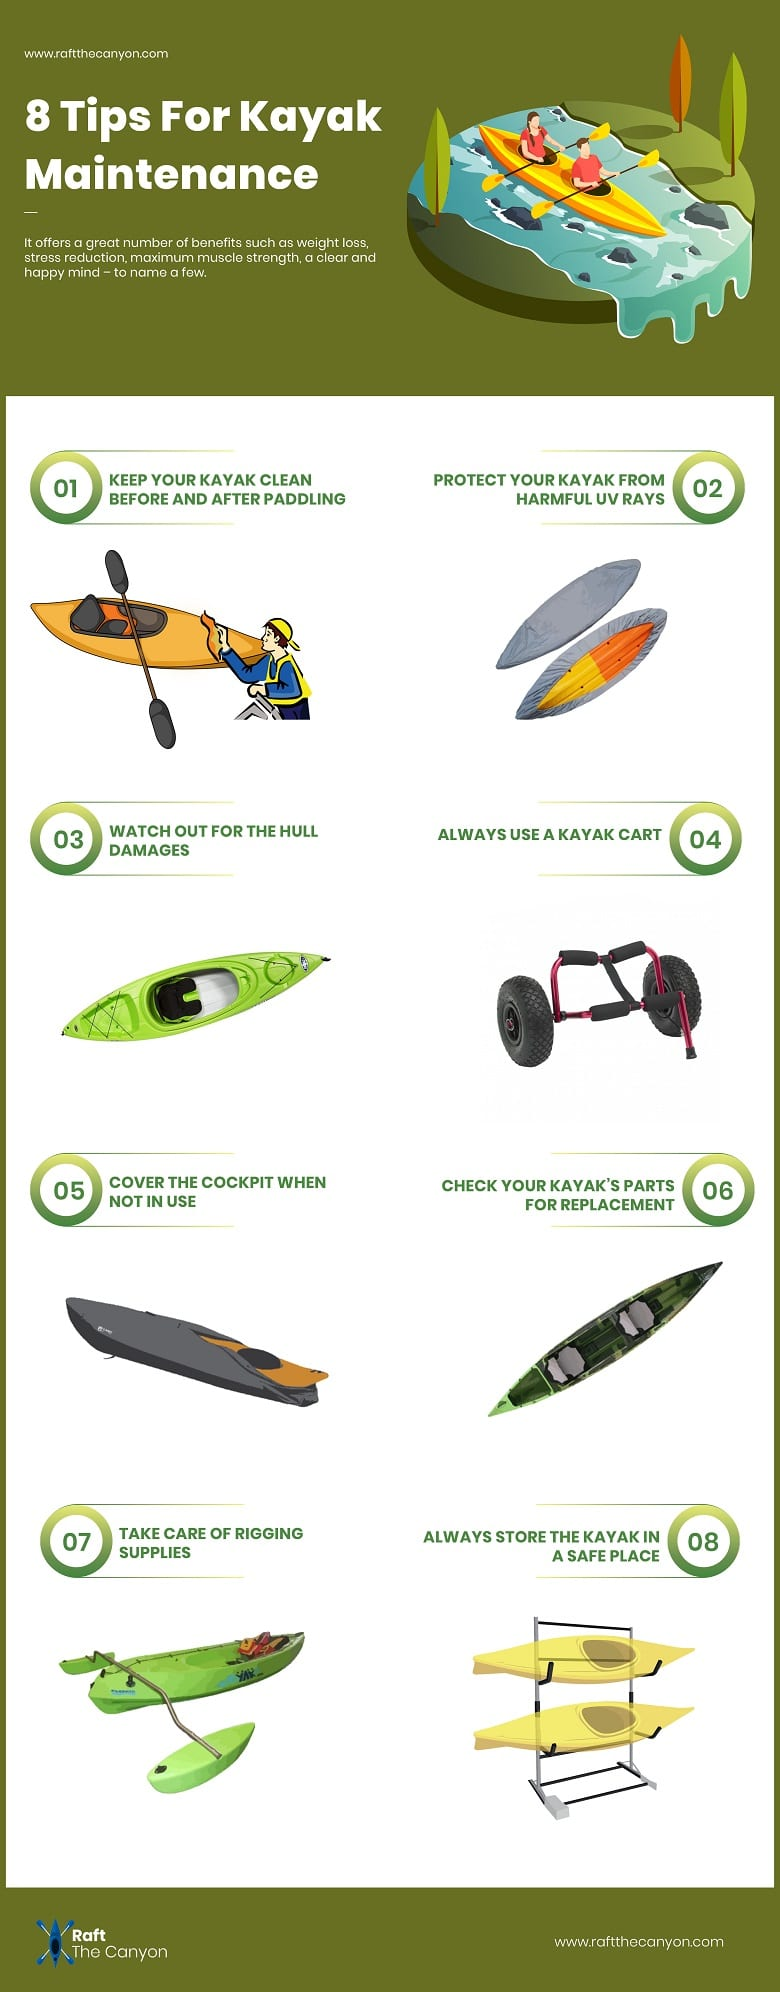 Kayak Maintenance